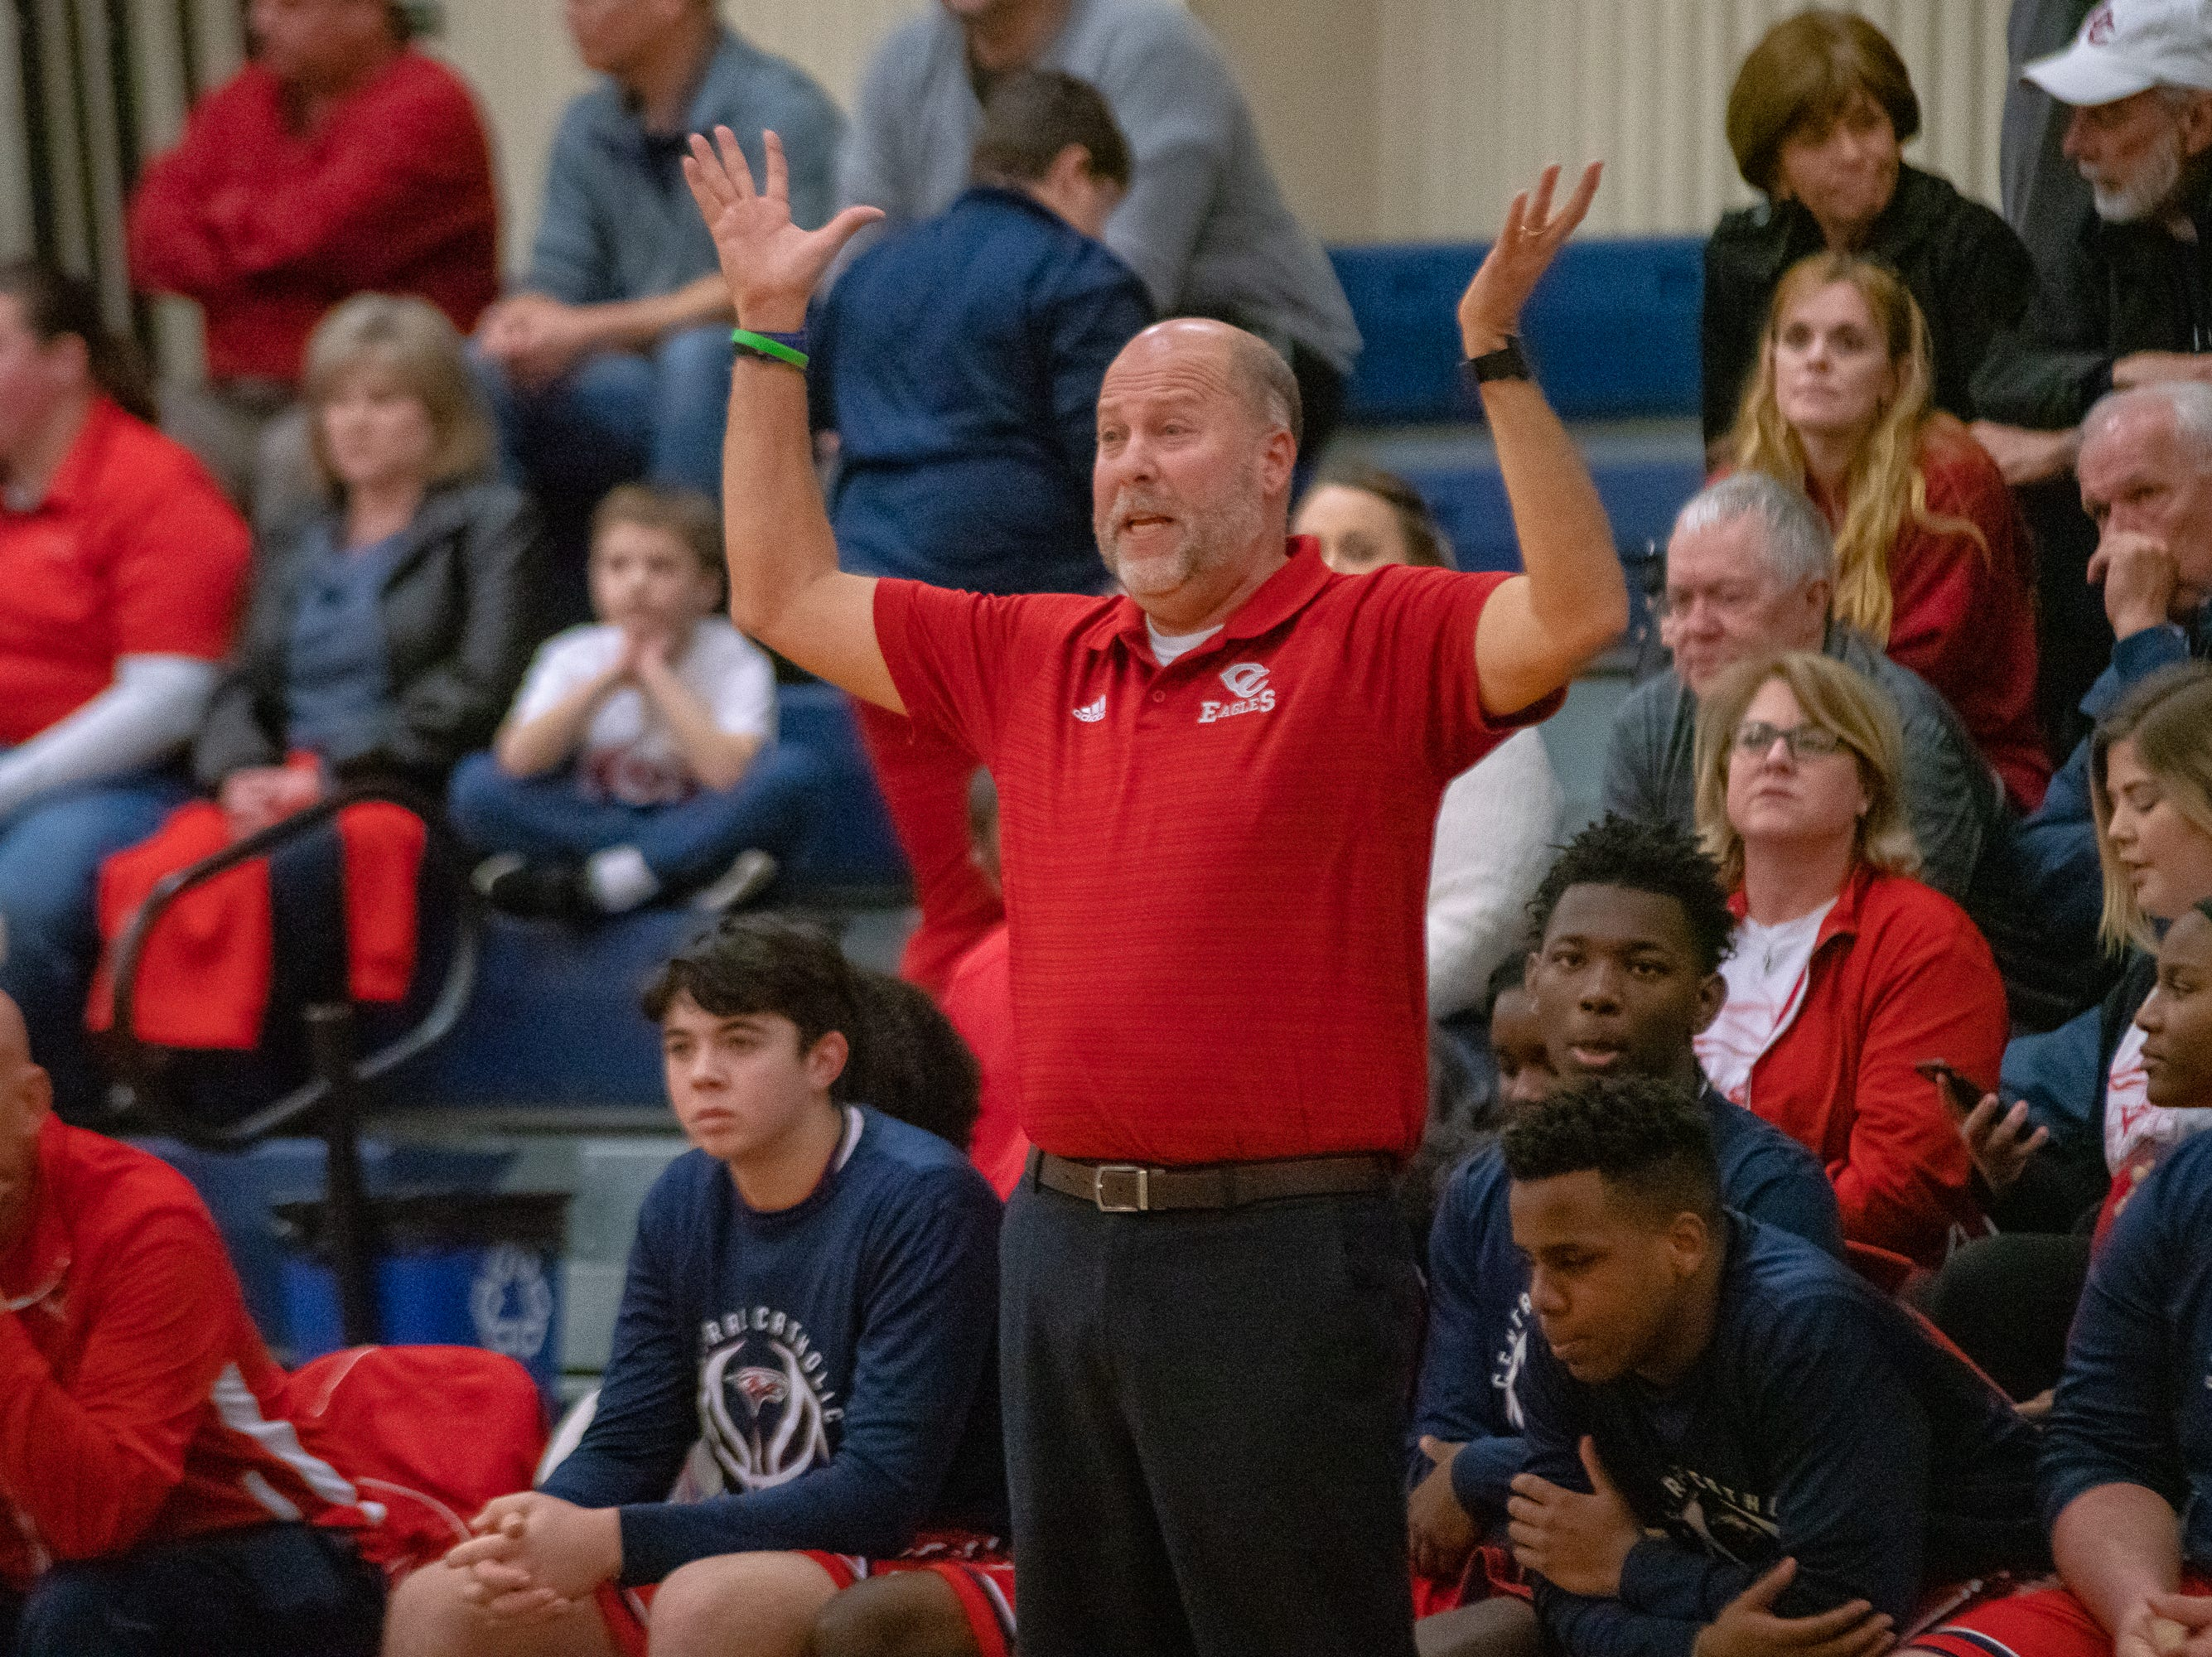 Central Catholic's head coach Larry Case II questions a call from the officials as the LCA Knights take on the Central Catholic Eagles on January 29, 2019.